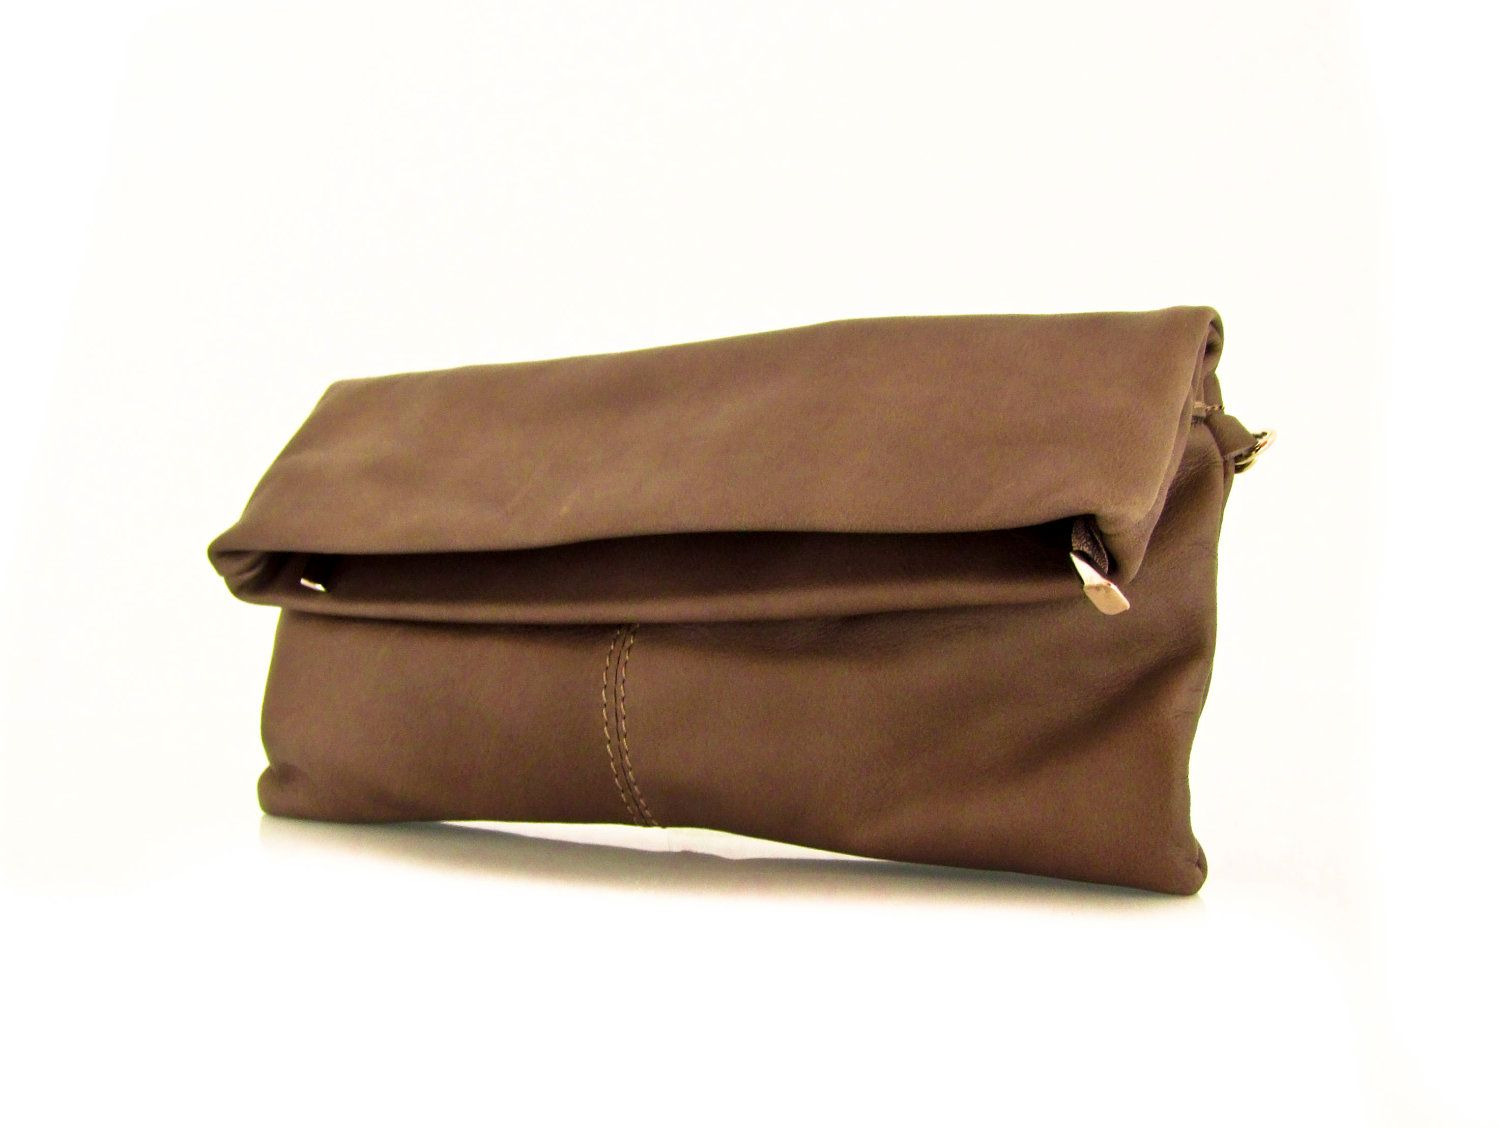 Handmade Leather Clutch Bag in Soil  -.- the Fold -.- new collection. $83.00, via Etsy.